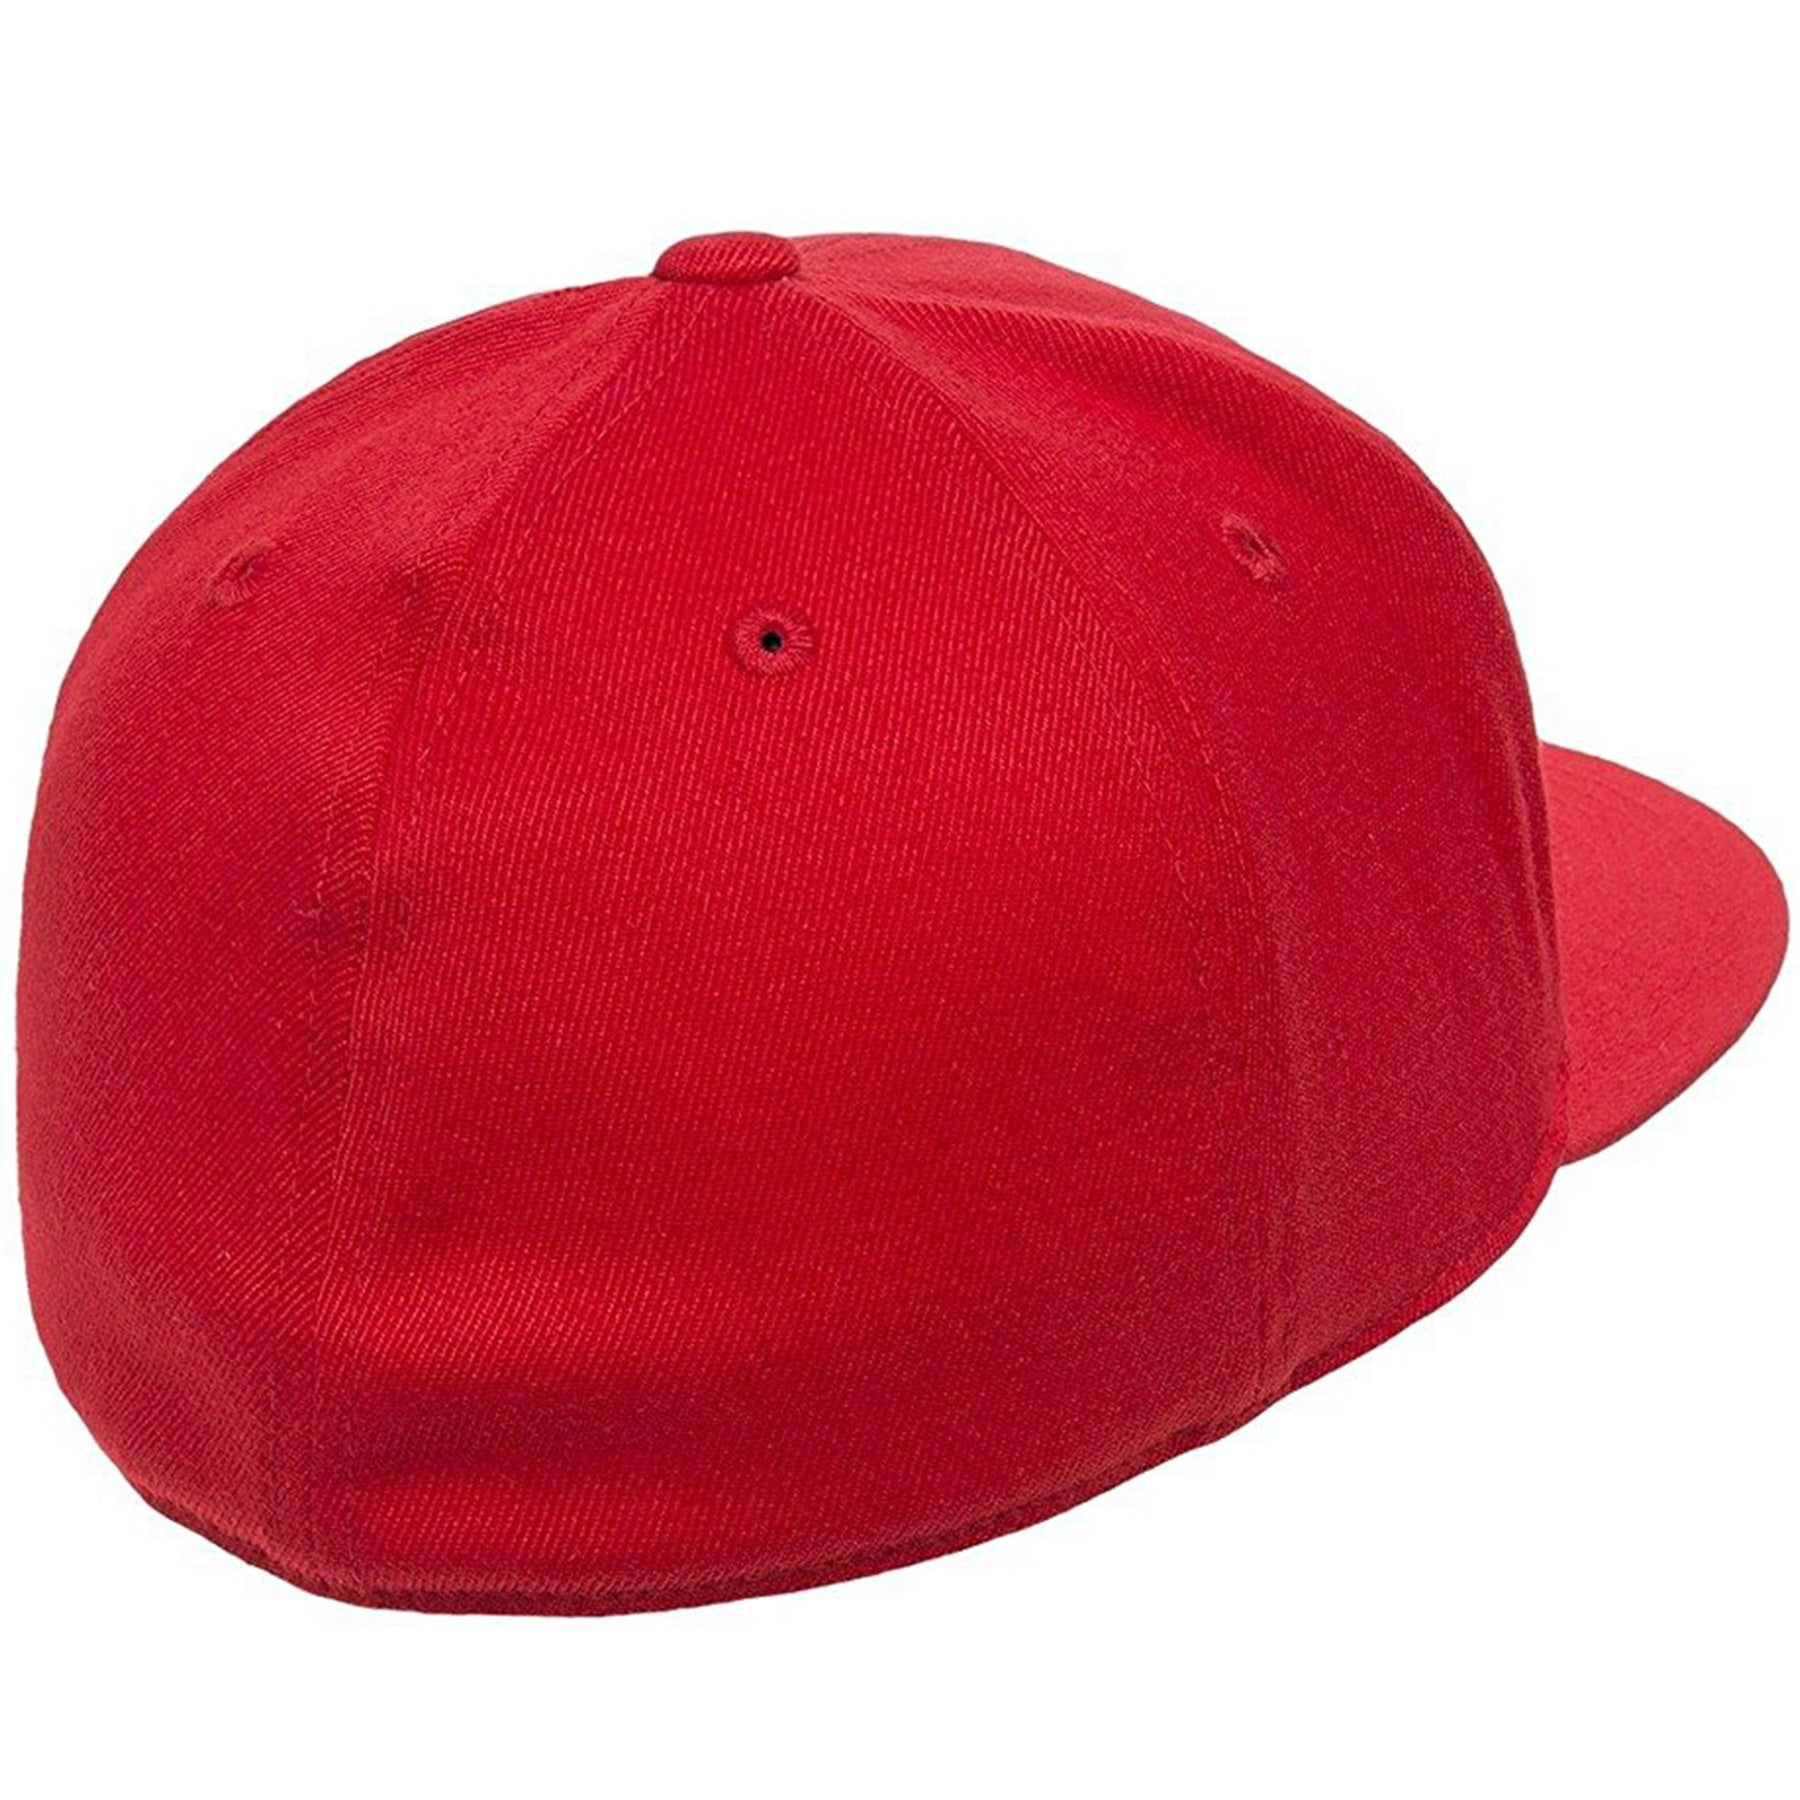 4aa538e2fec7c the red flexfit flat brim stretch fit elastic fit fitted hat has a structured  crown